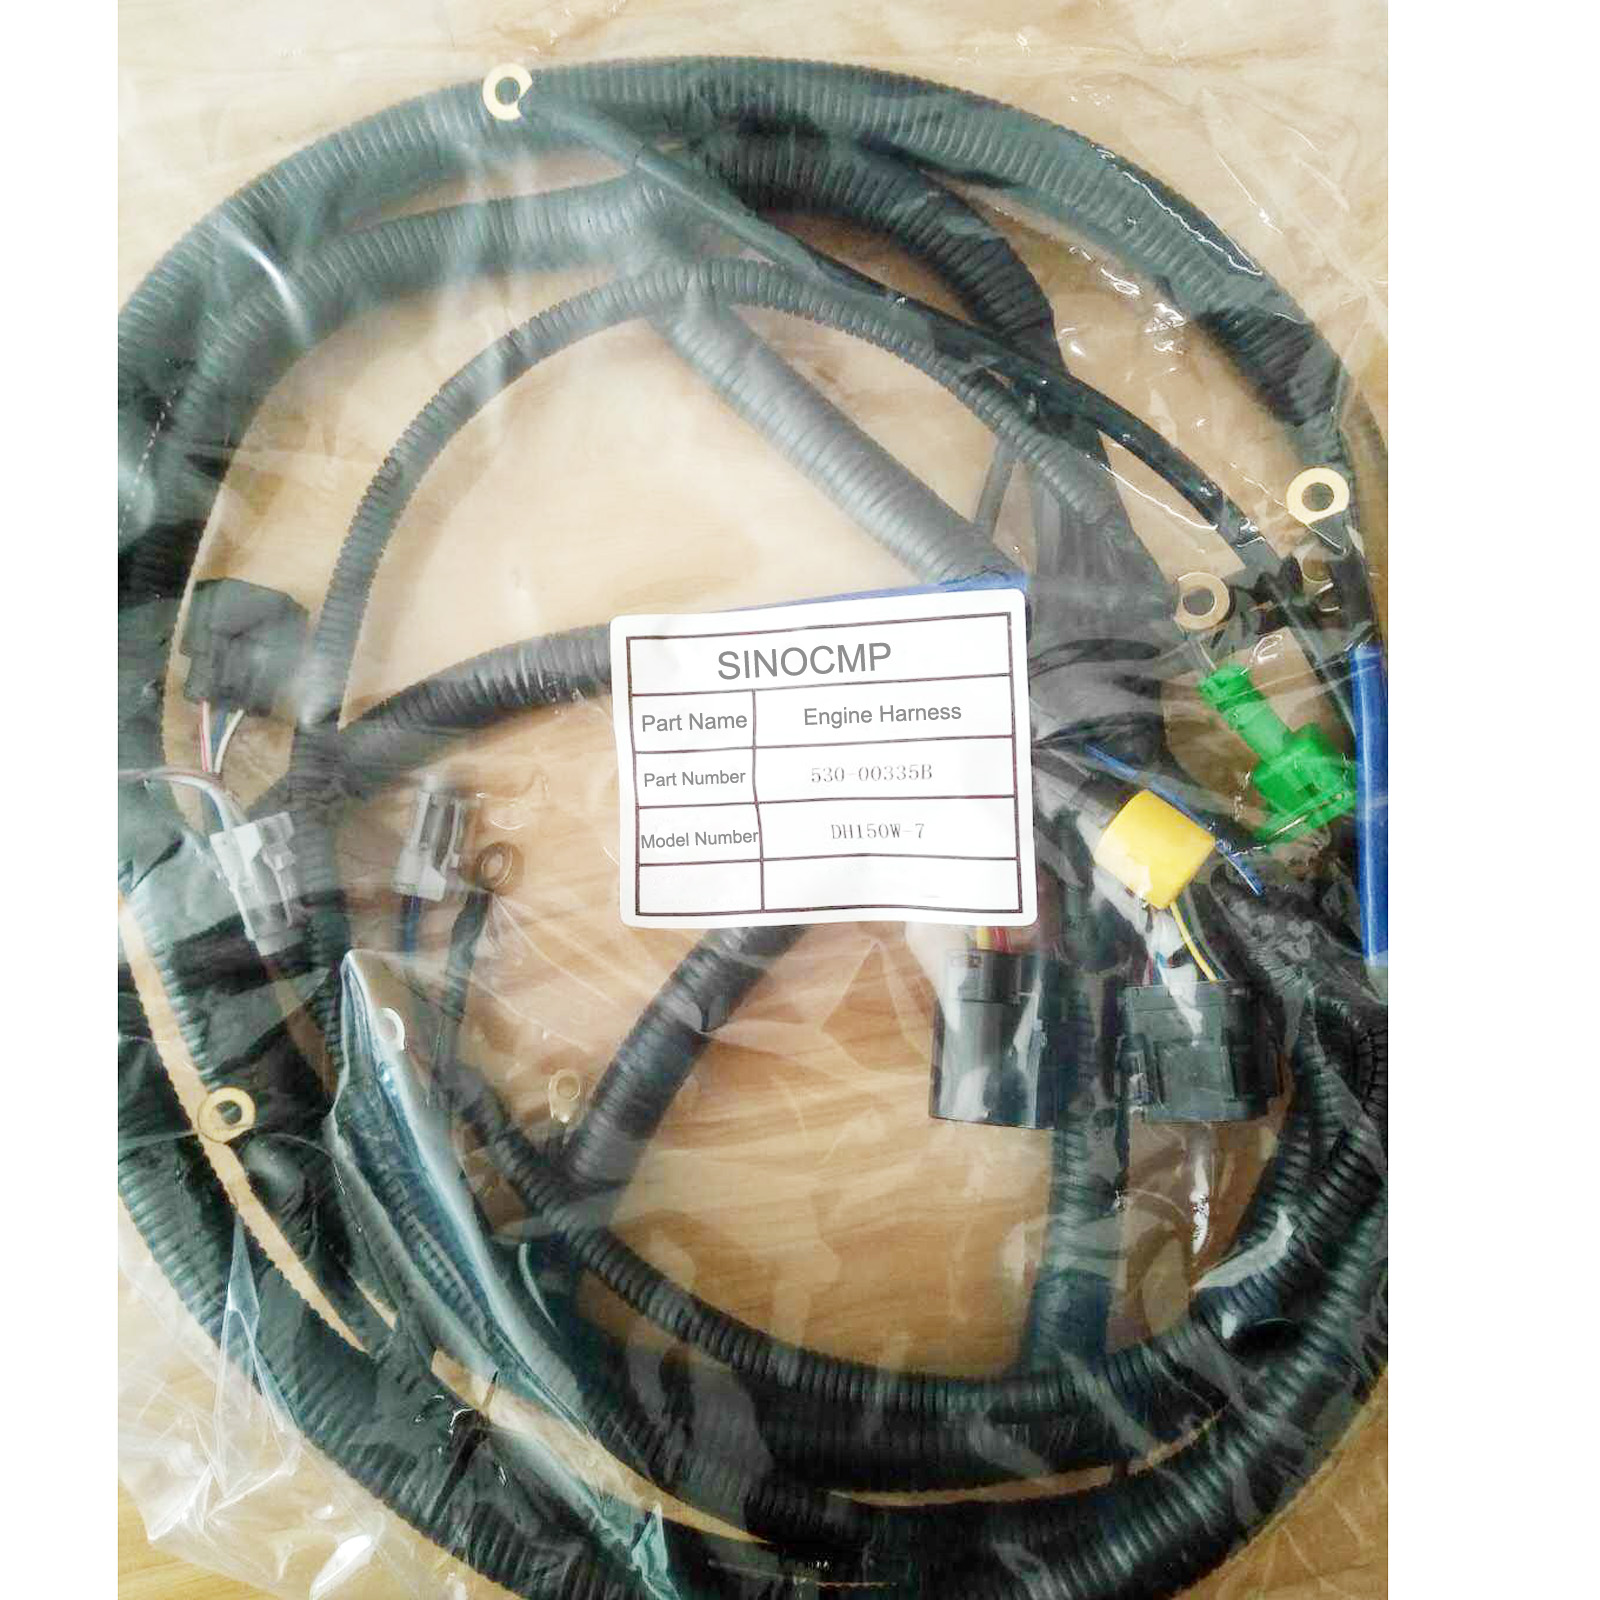 Engine Wiring Harness 530 00327a For Daewoo Doosan Dh220 7 Excavator Wire